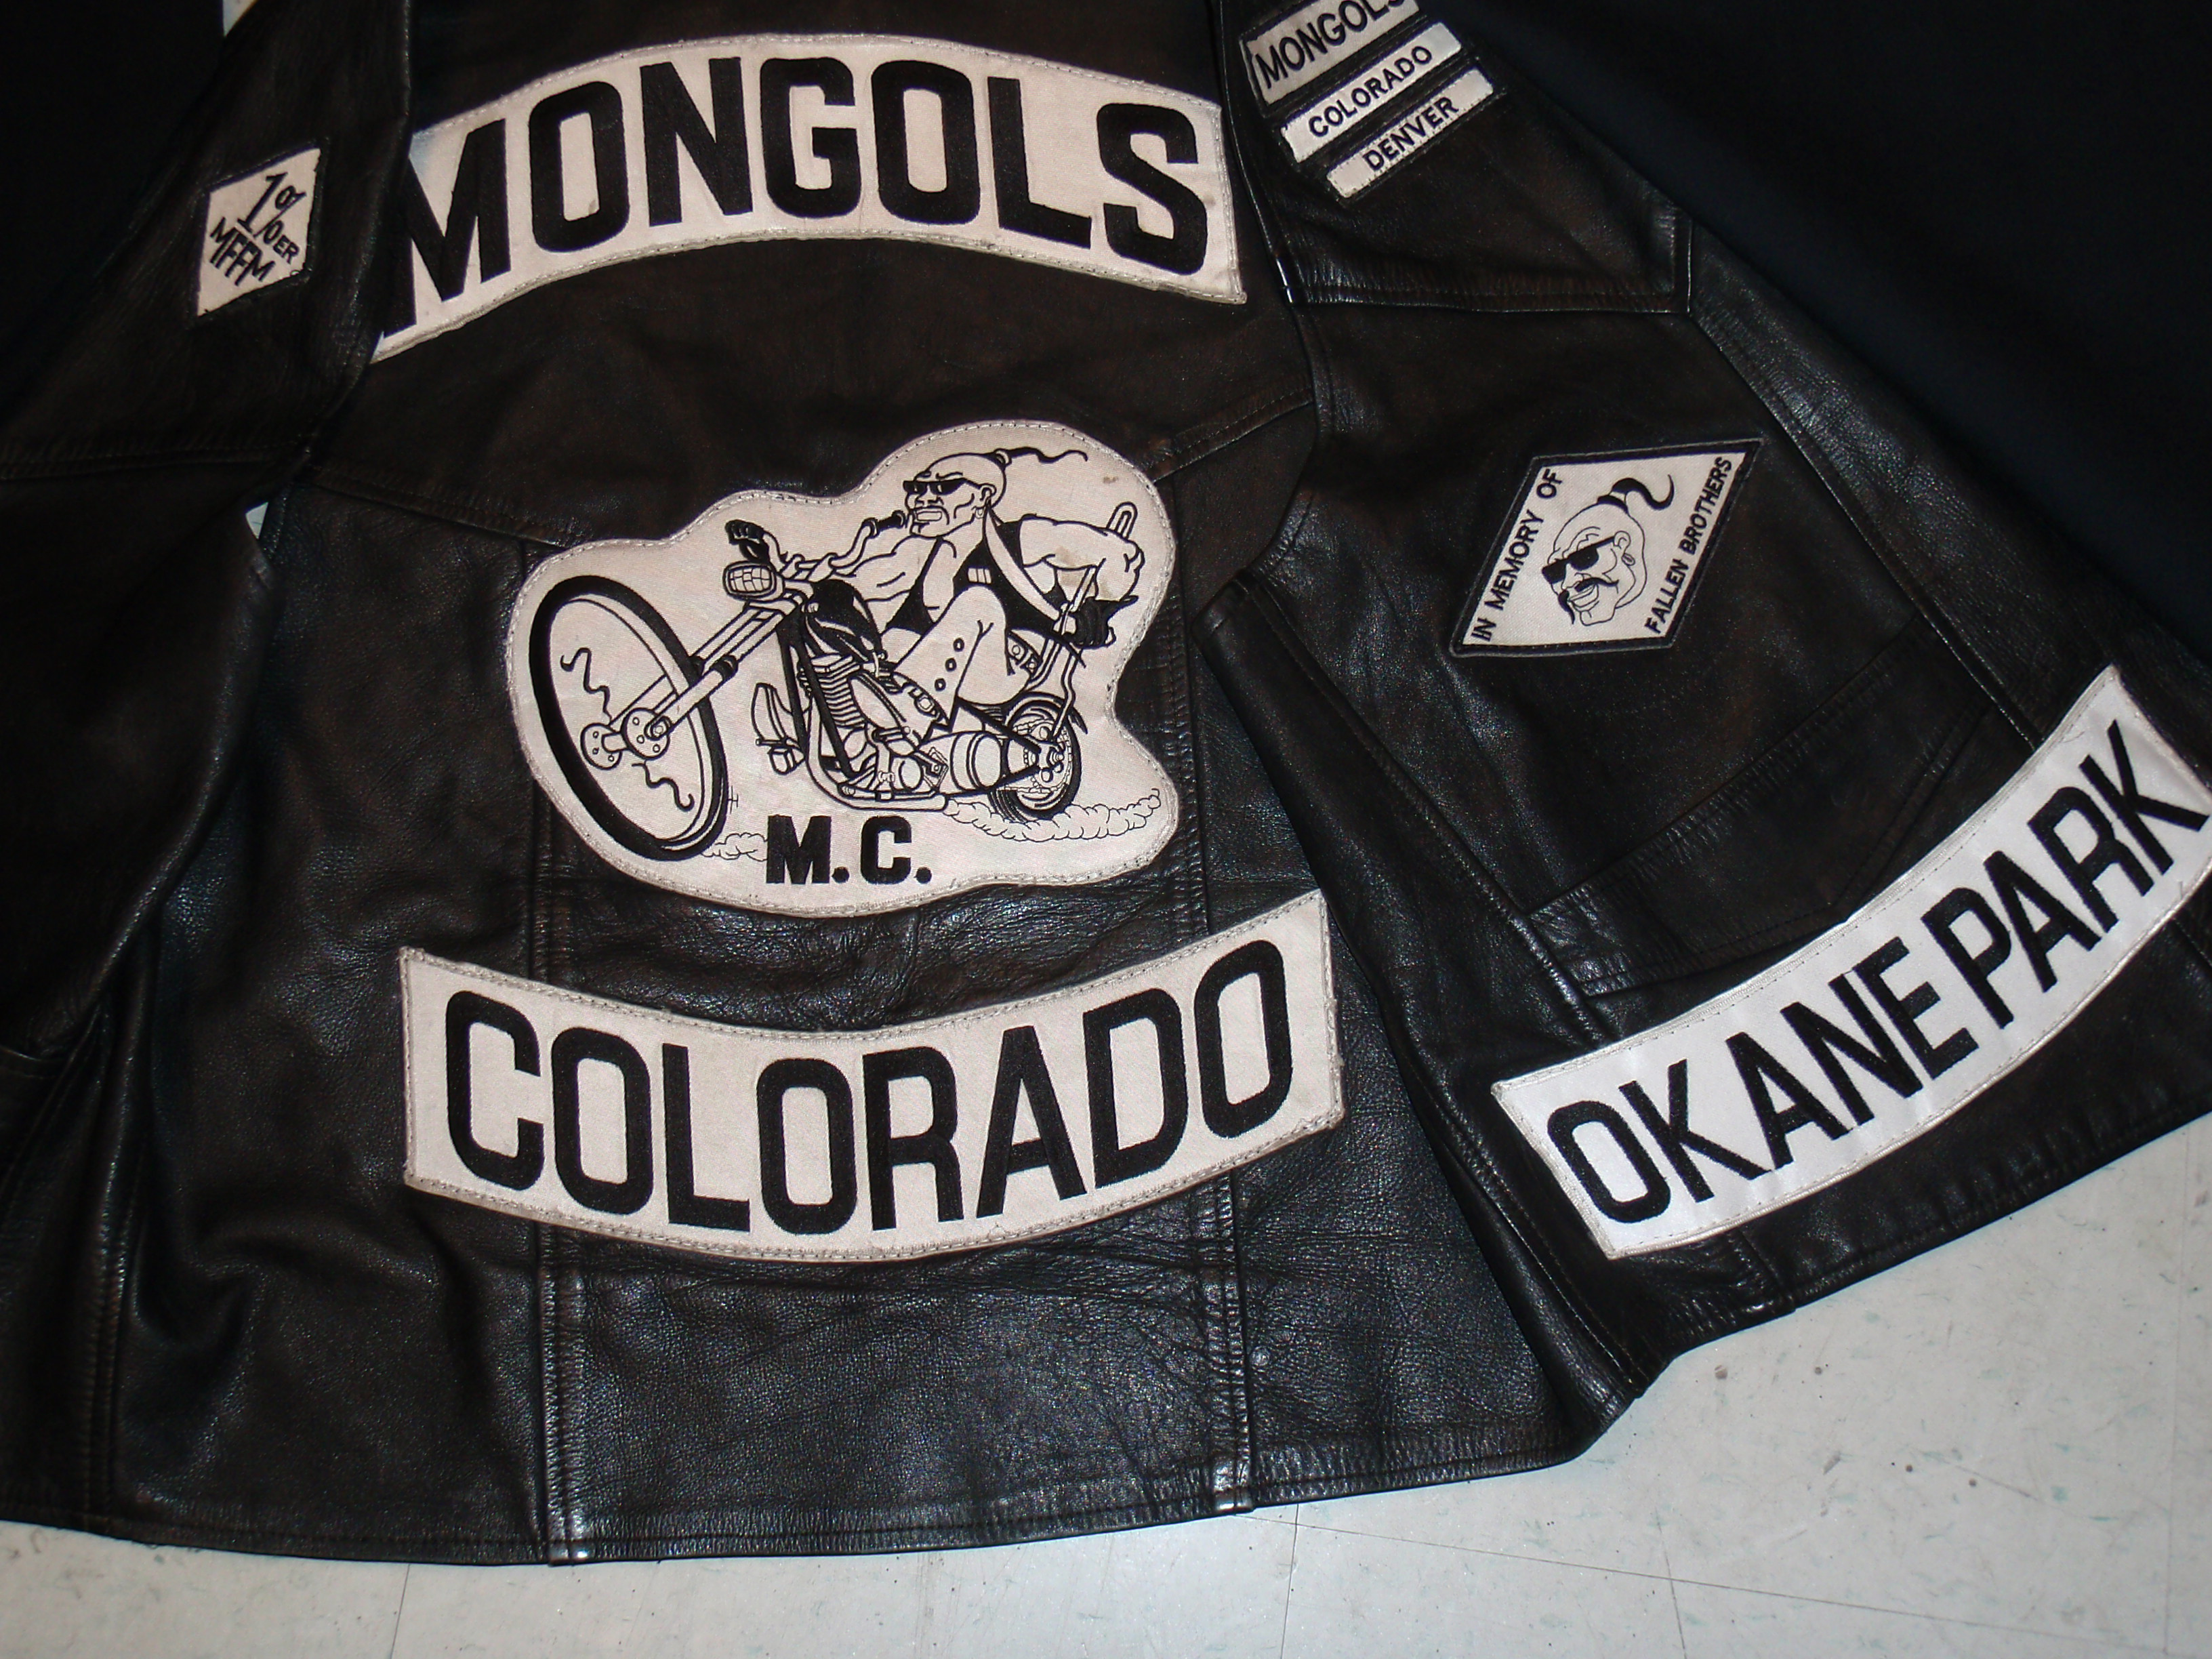 US Mongols patch over Australian Finks gang - SMHcomau